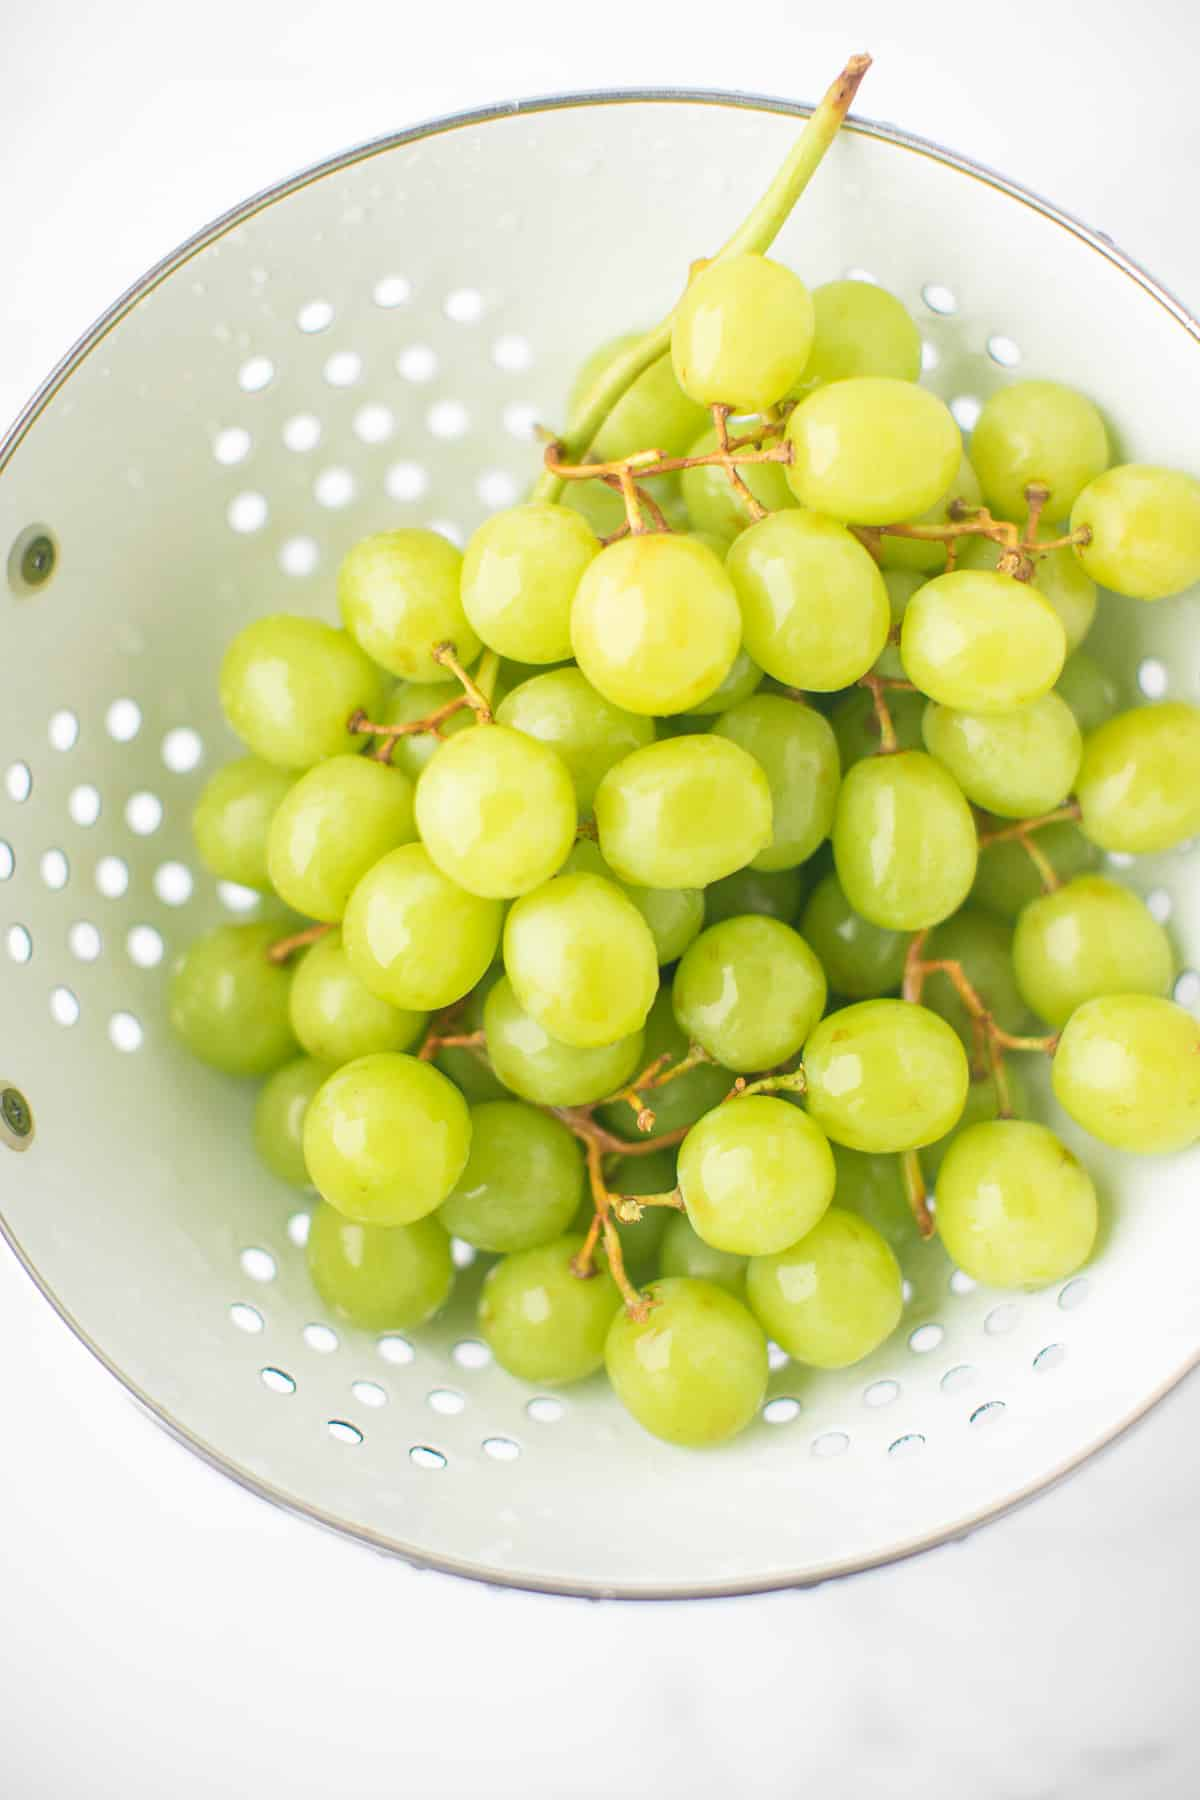 grapes being washed in a colander